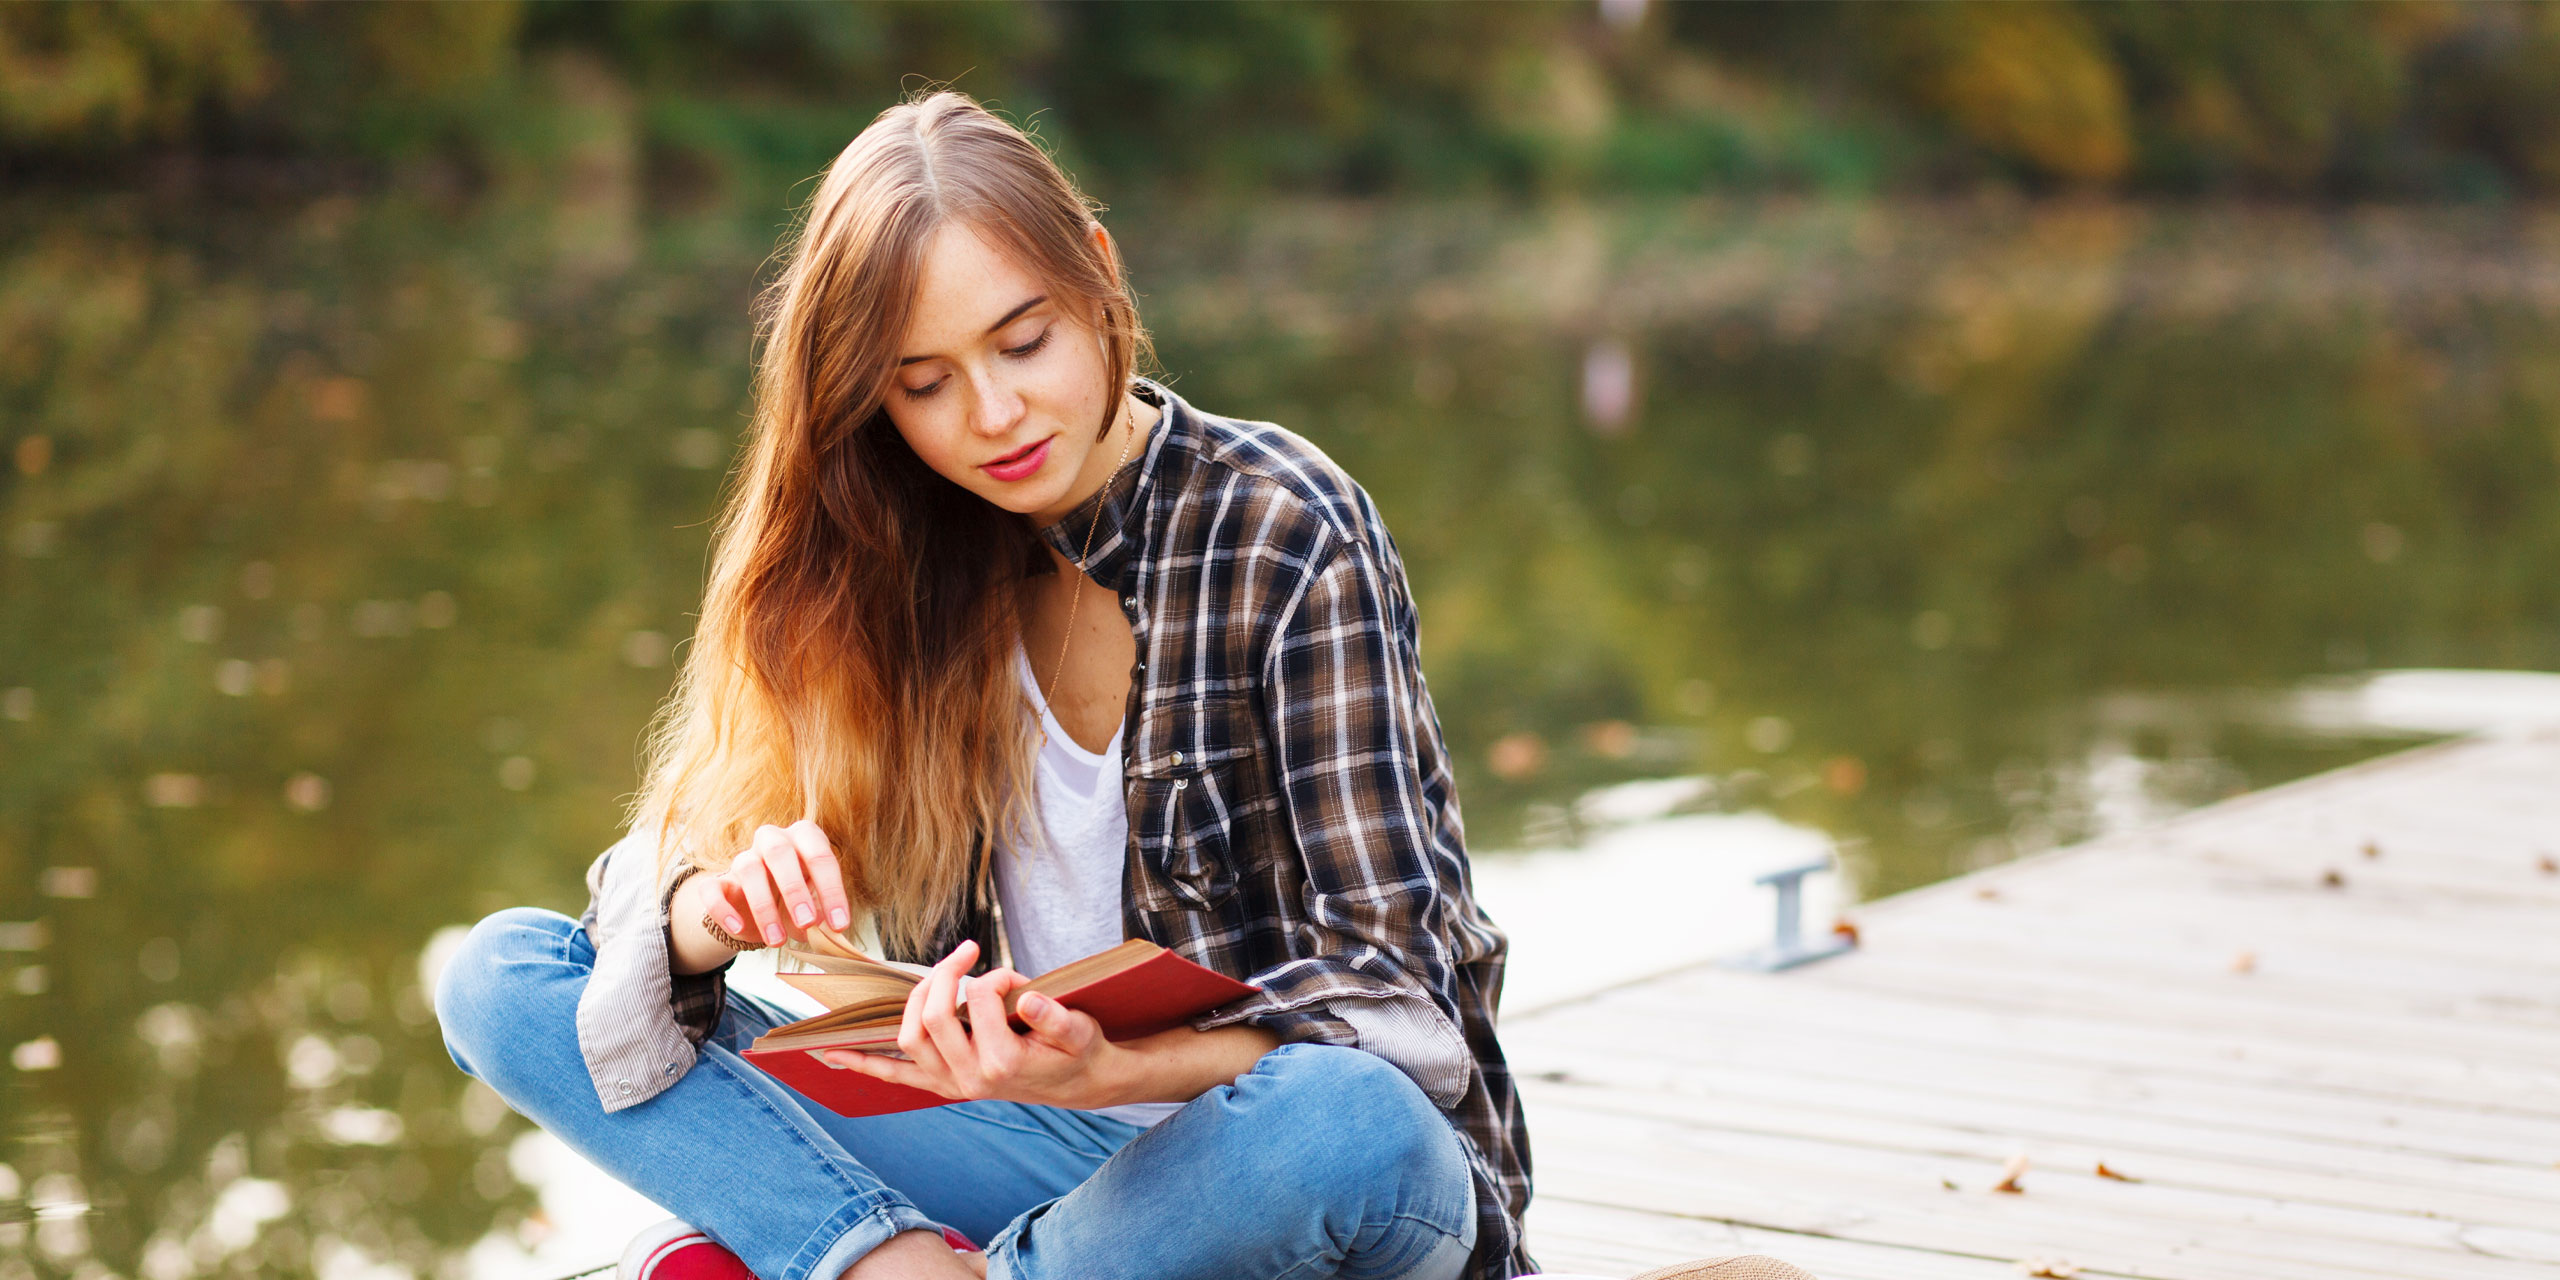 Teen Reading; Courtesy of George Dolgikh/Shutterstock.com